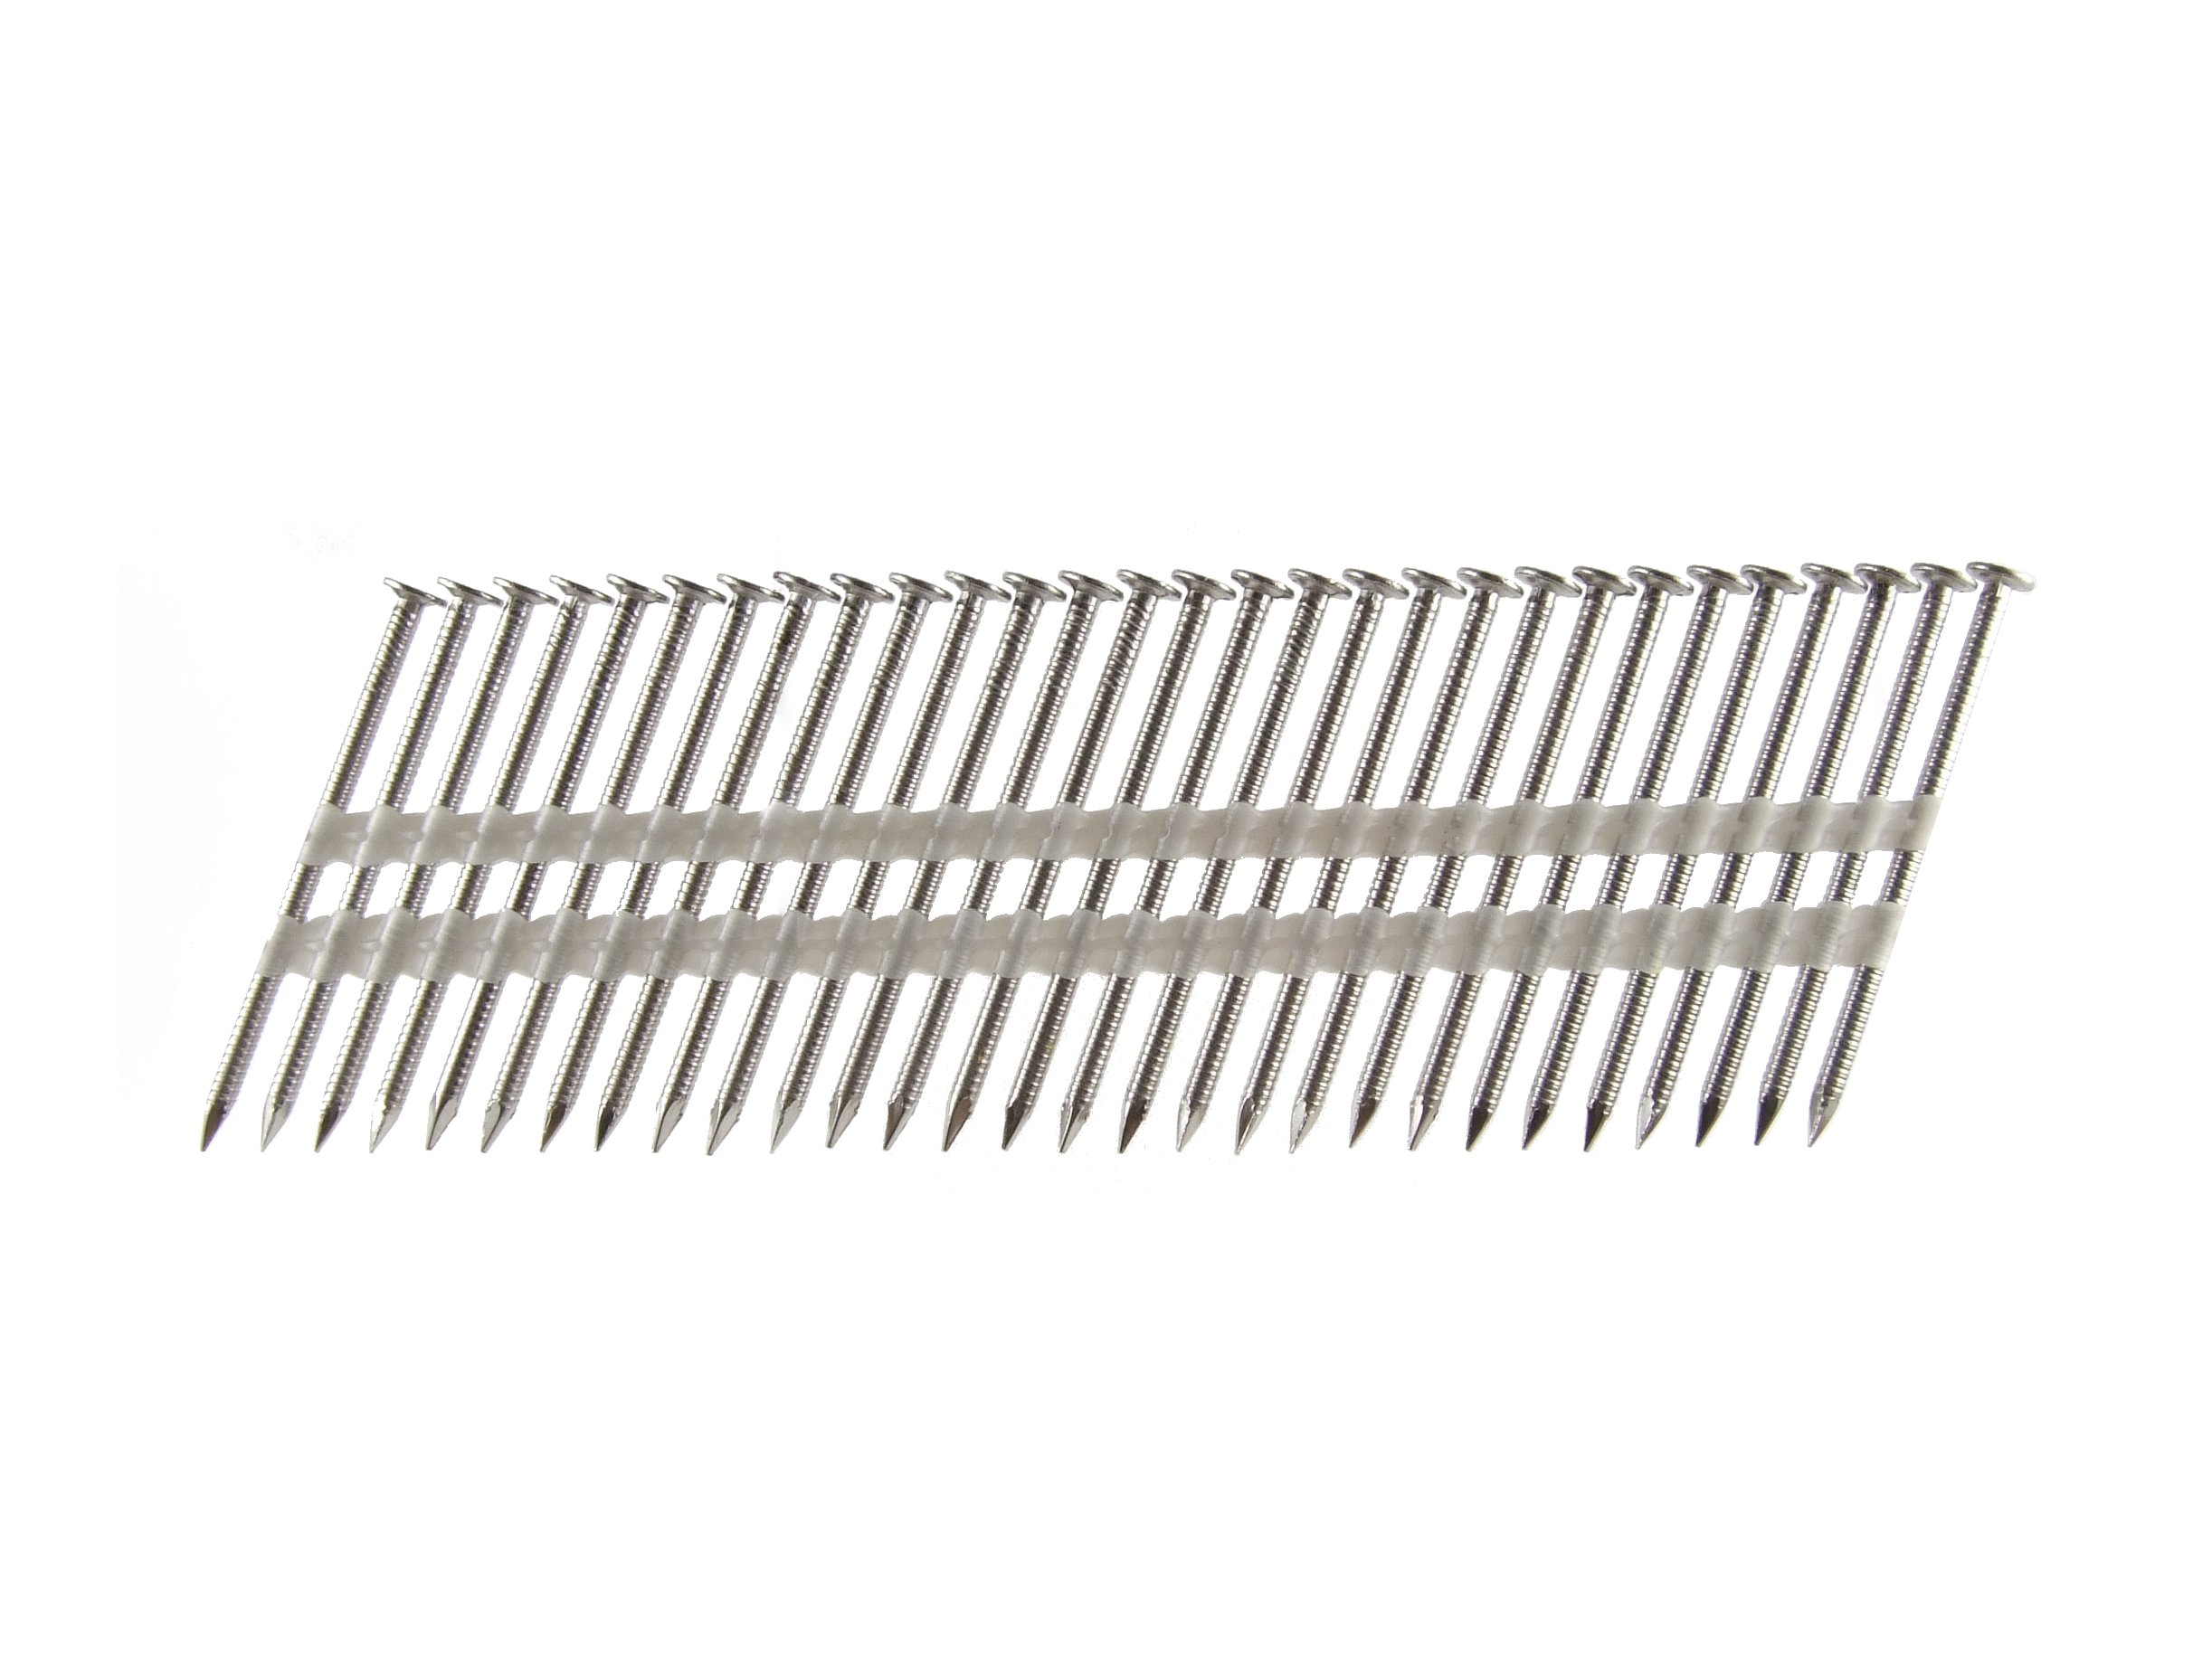 B&C Eagle A3X131RSS/22 Round Head 3-Inch x .131 x 22 Degree S304 Stainless Steel Ring Shank Plastic Collated Framing Nails (500 per box)